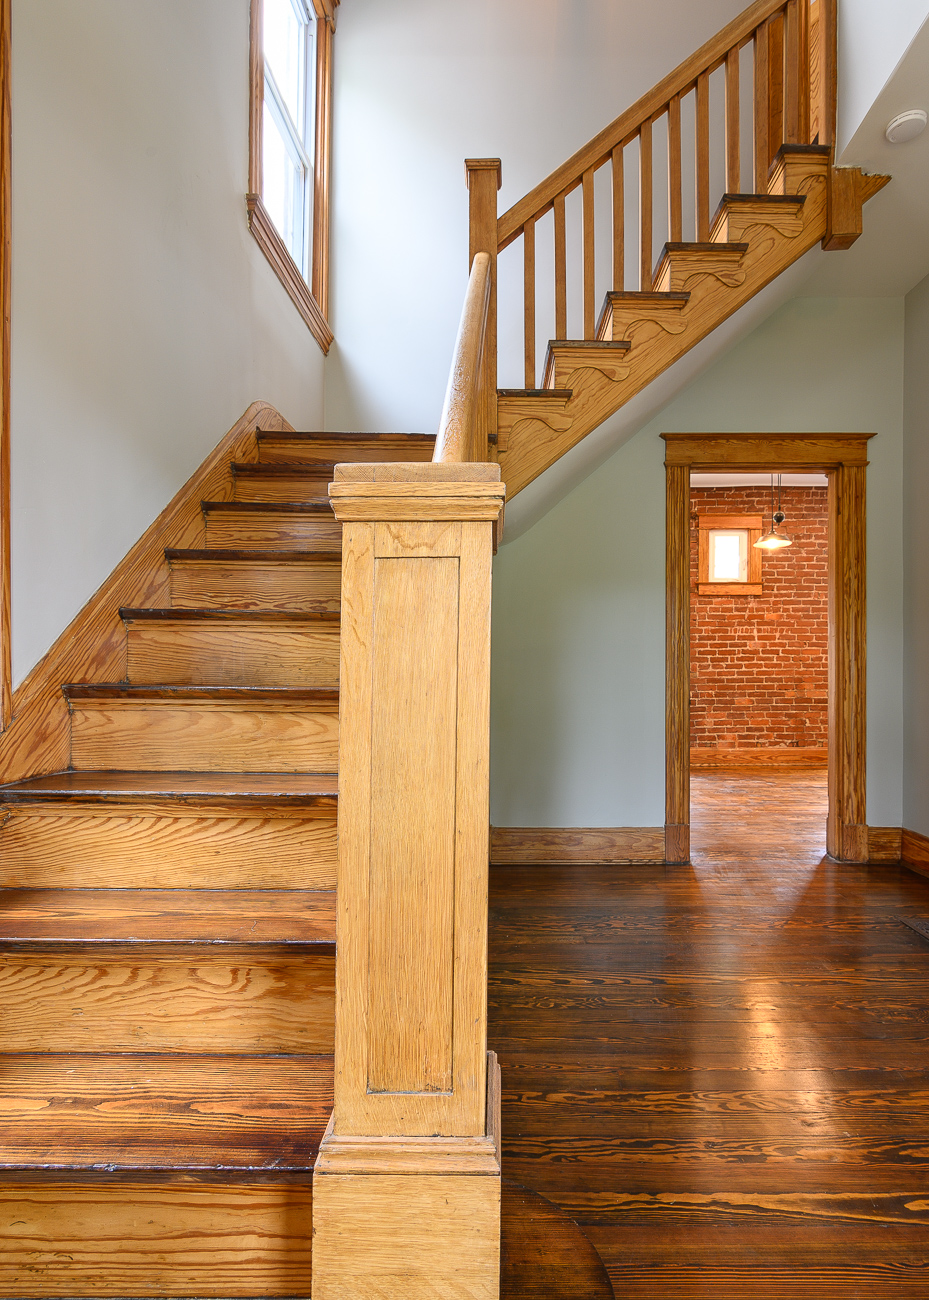 The first floor staircase features ornate woodwork you won't find in a newly built house. The renovation cleaned it up without replacing it. / Image: Phil Armstrong, Cincinnati Refined // Published: 9.29.19